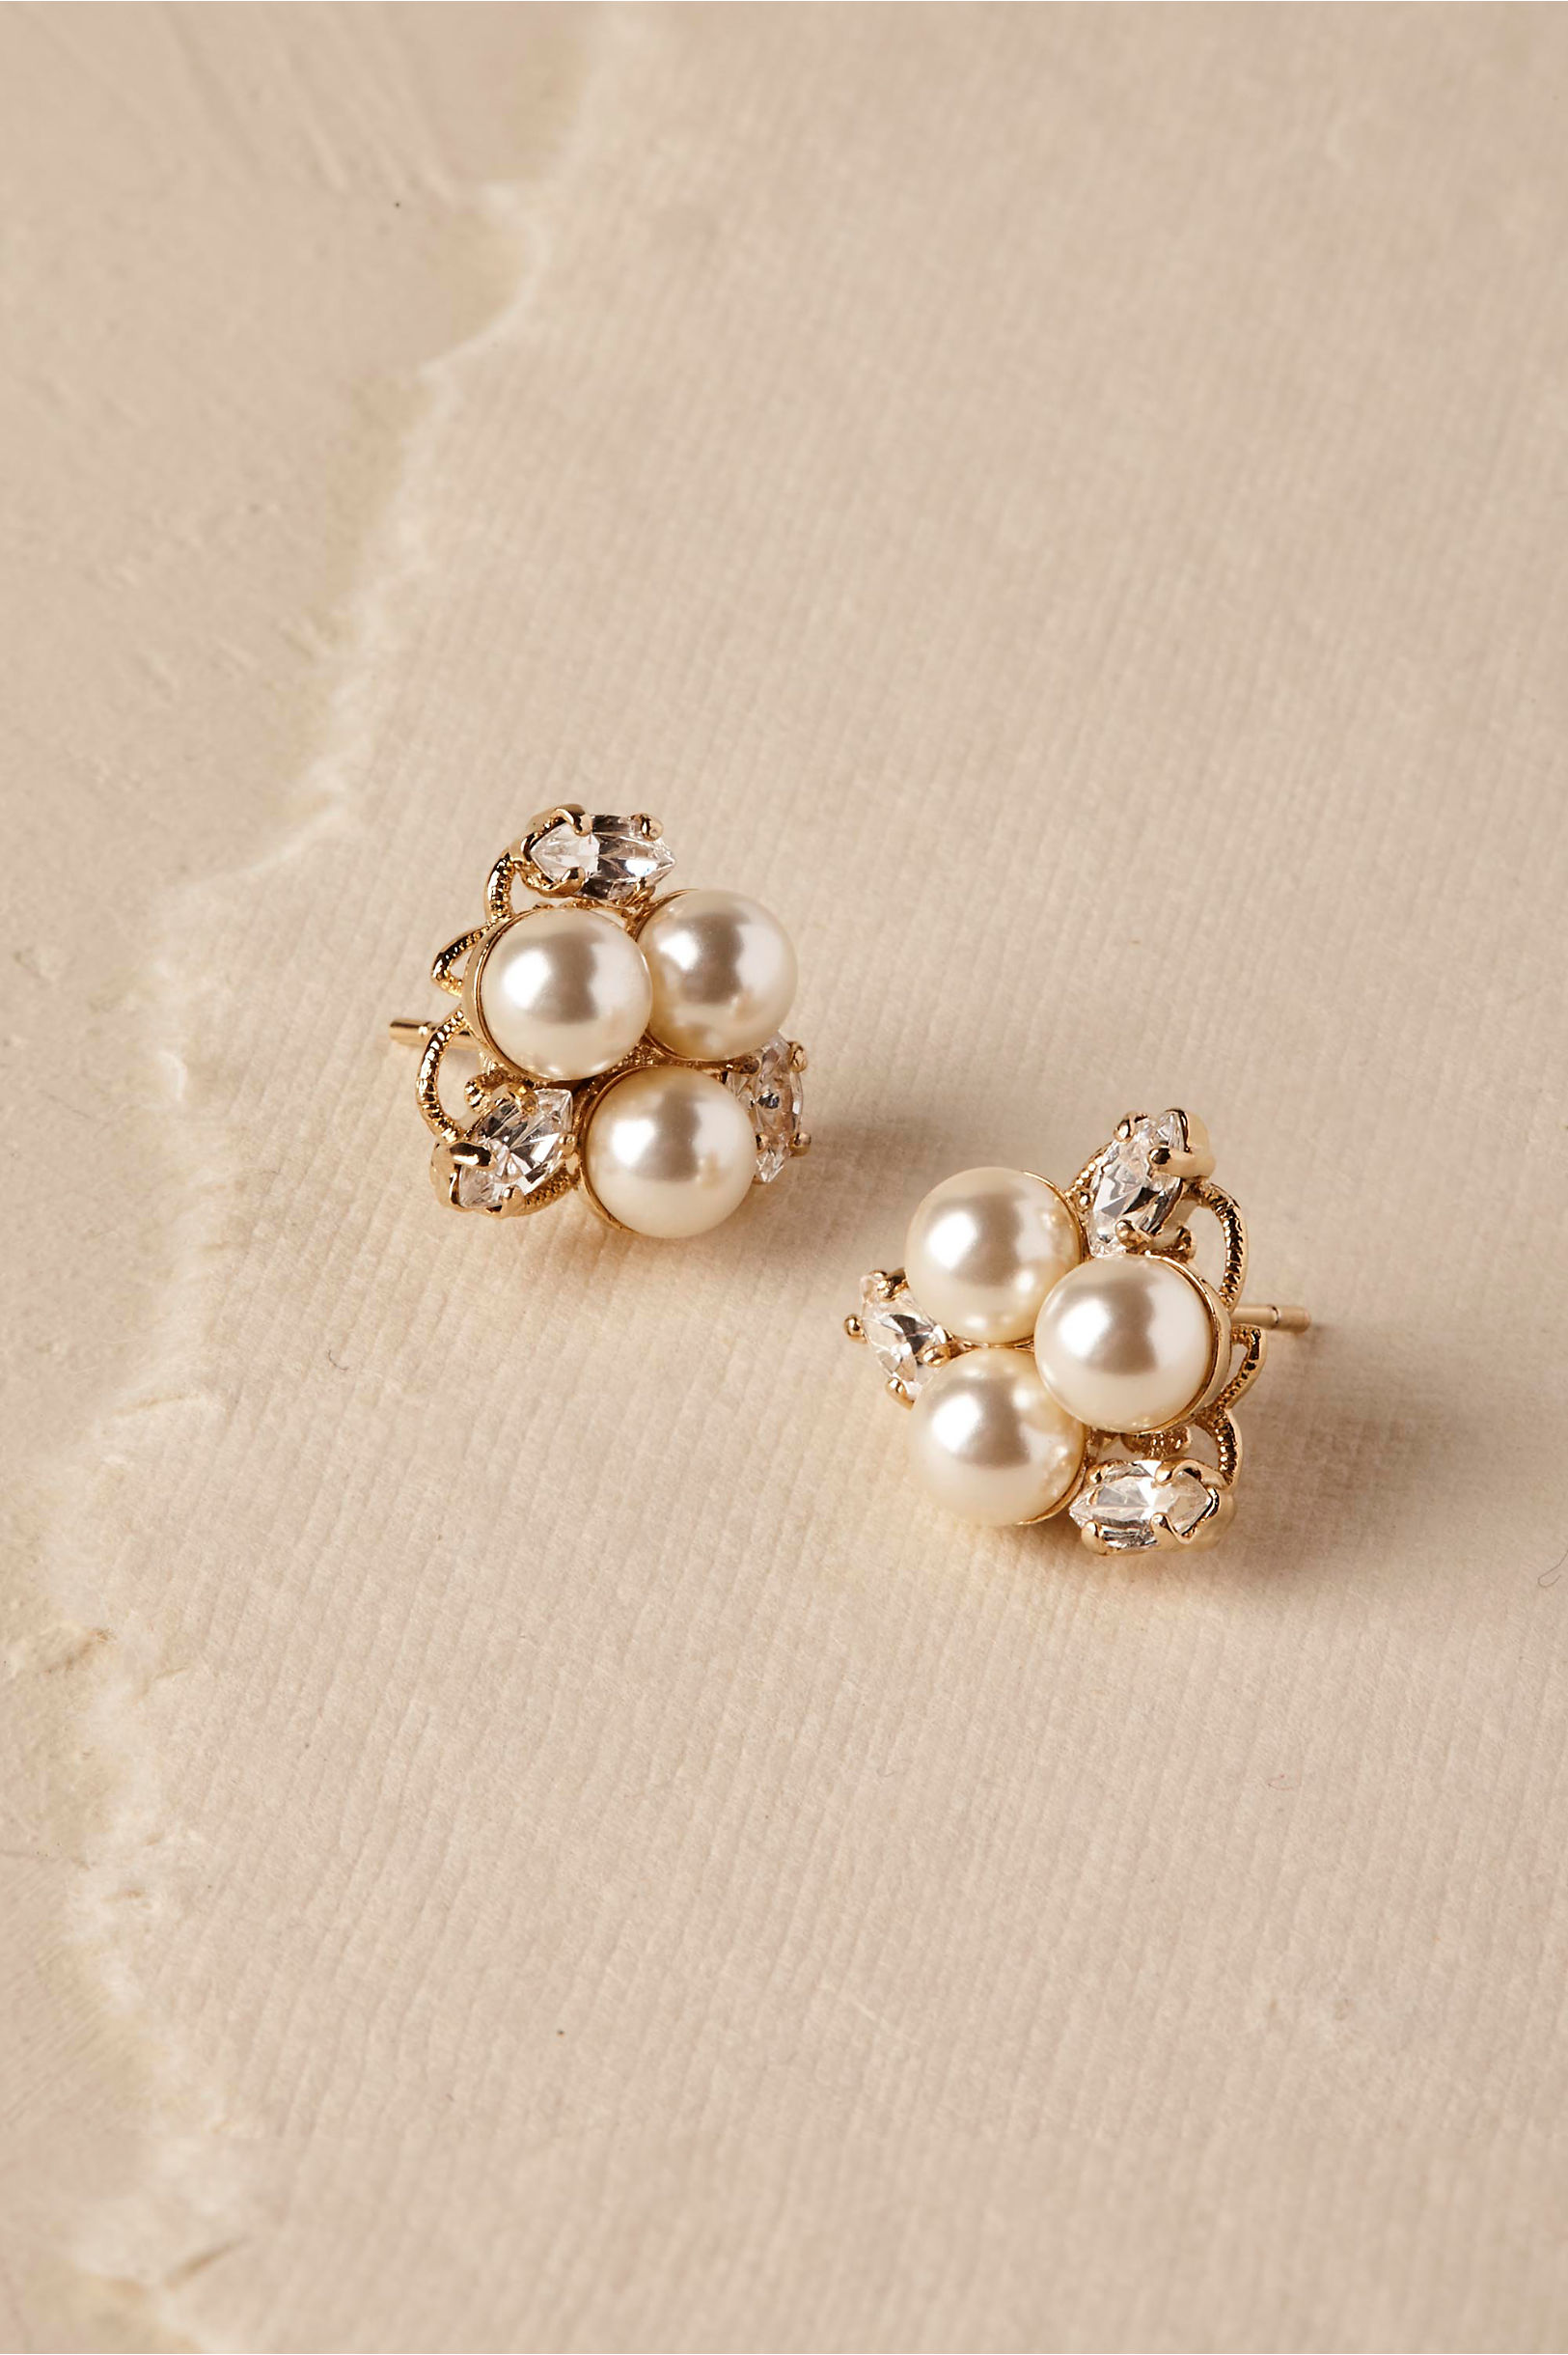 of earring stud gb white en links large effervescence hires london pearl earrings